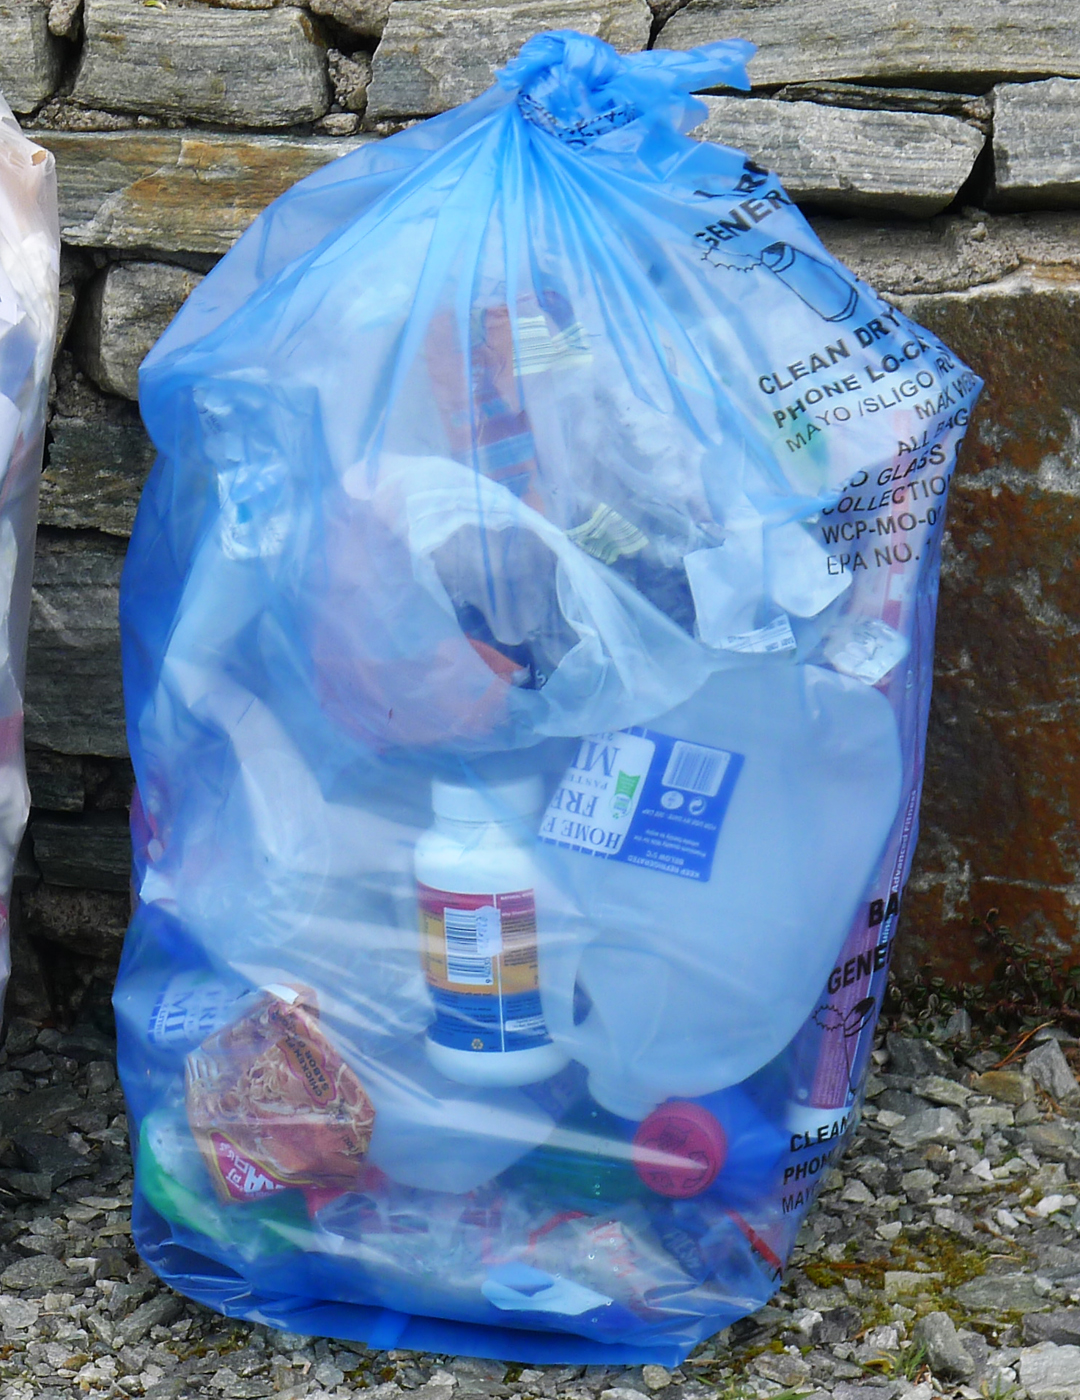 Plastic bag for you - Recyclable Waste In The Form Of Dry Paper Cardboard Steel Cans And Plastic Go Into Blue Bags Again Buy These In Local Shops For 3 See There S A Big